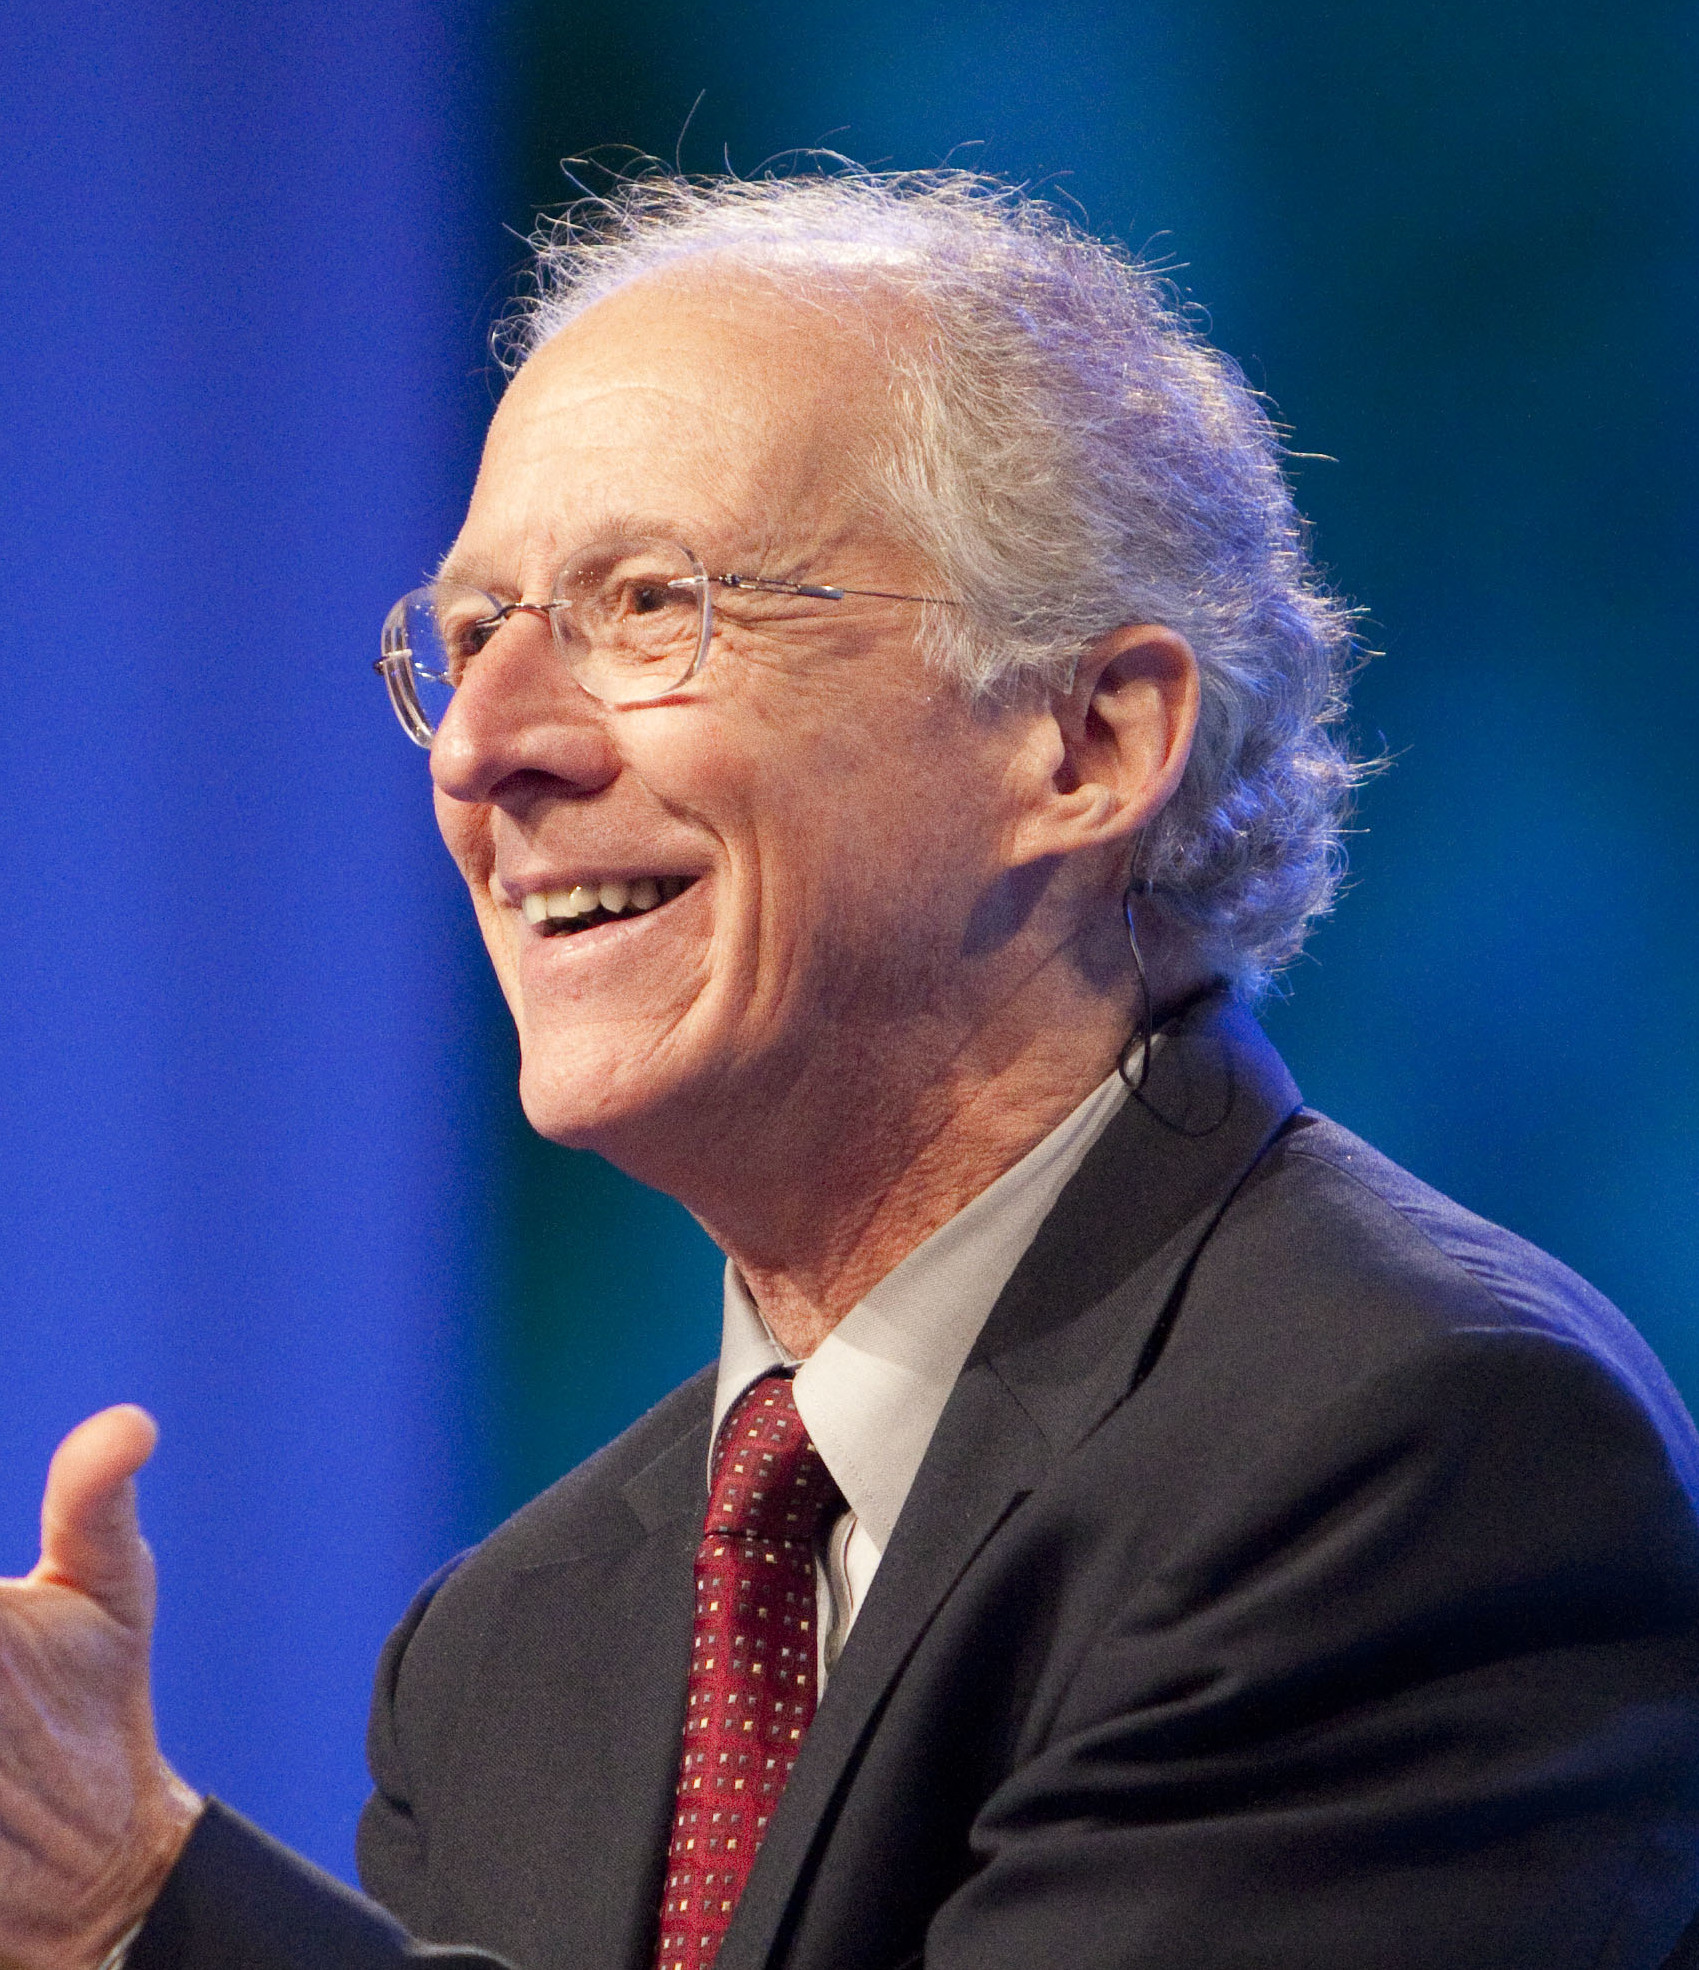 Online dating john piper in Melbourne